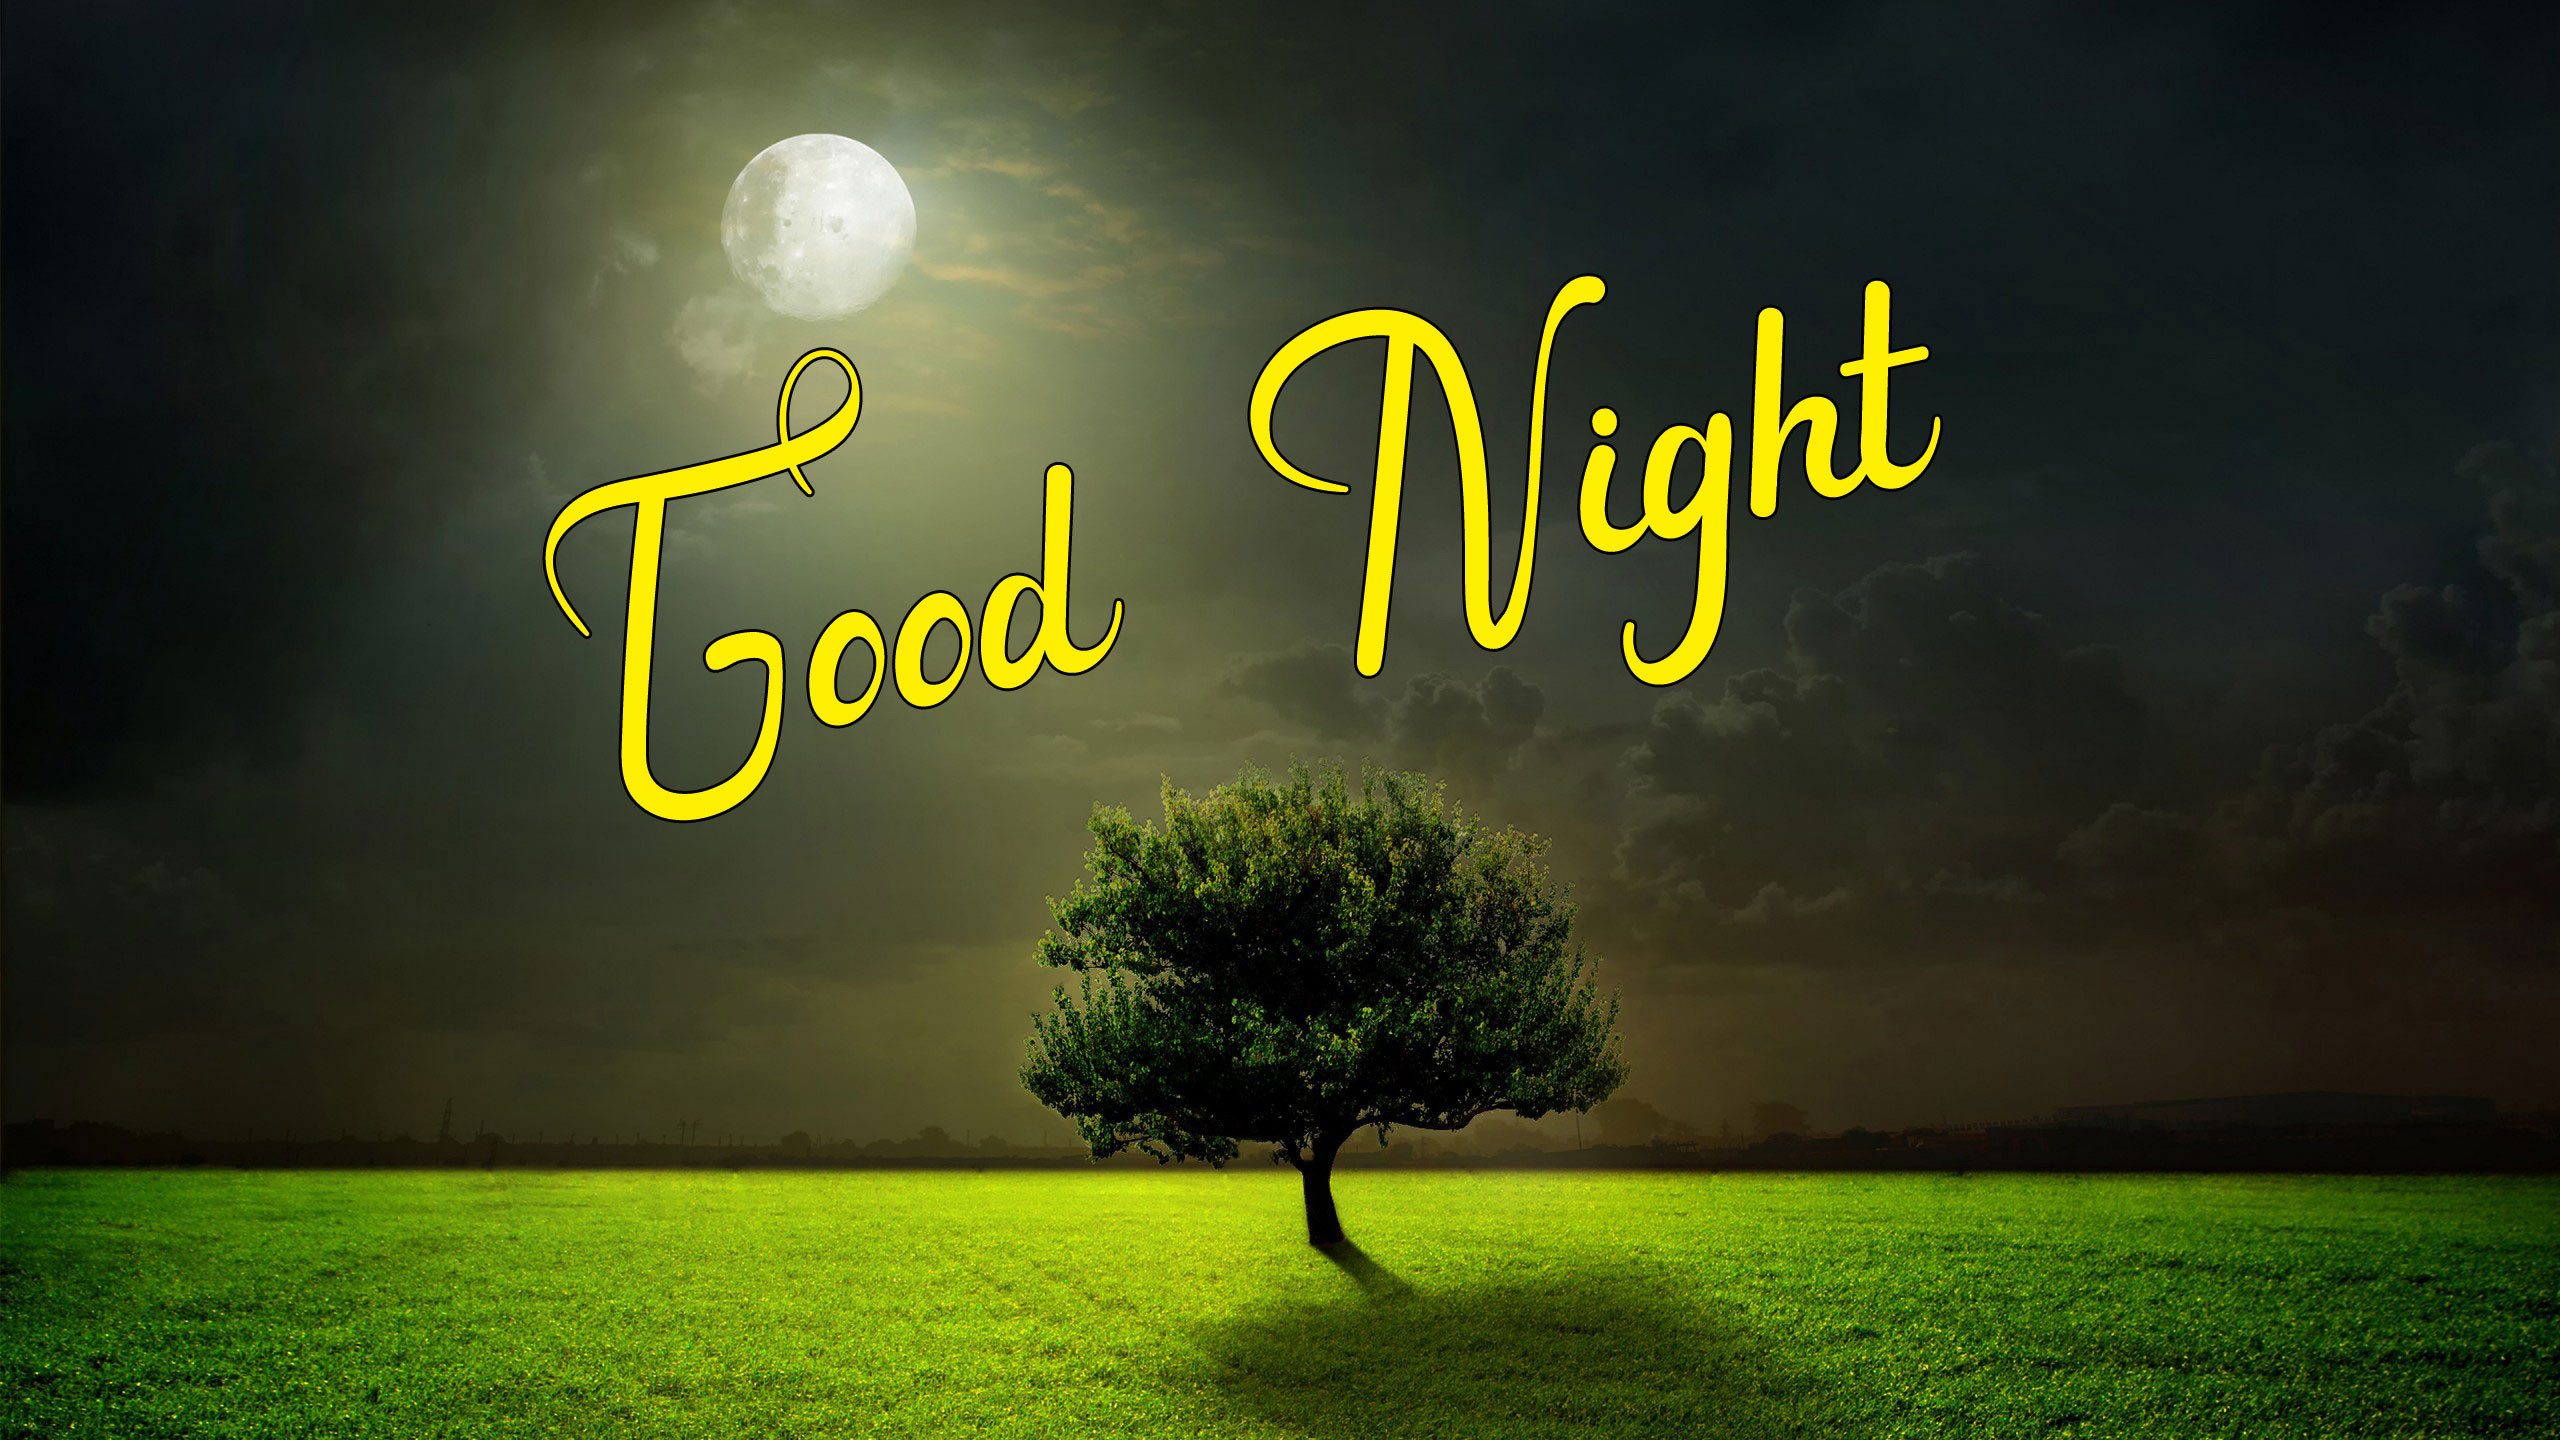 Beautiful New Good Night Images wallpaper for free download